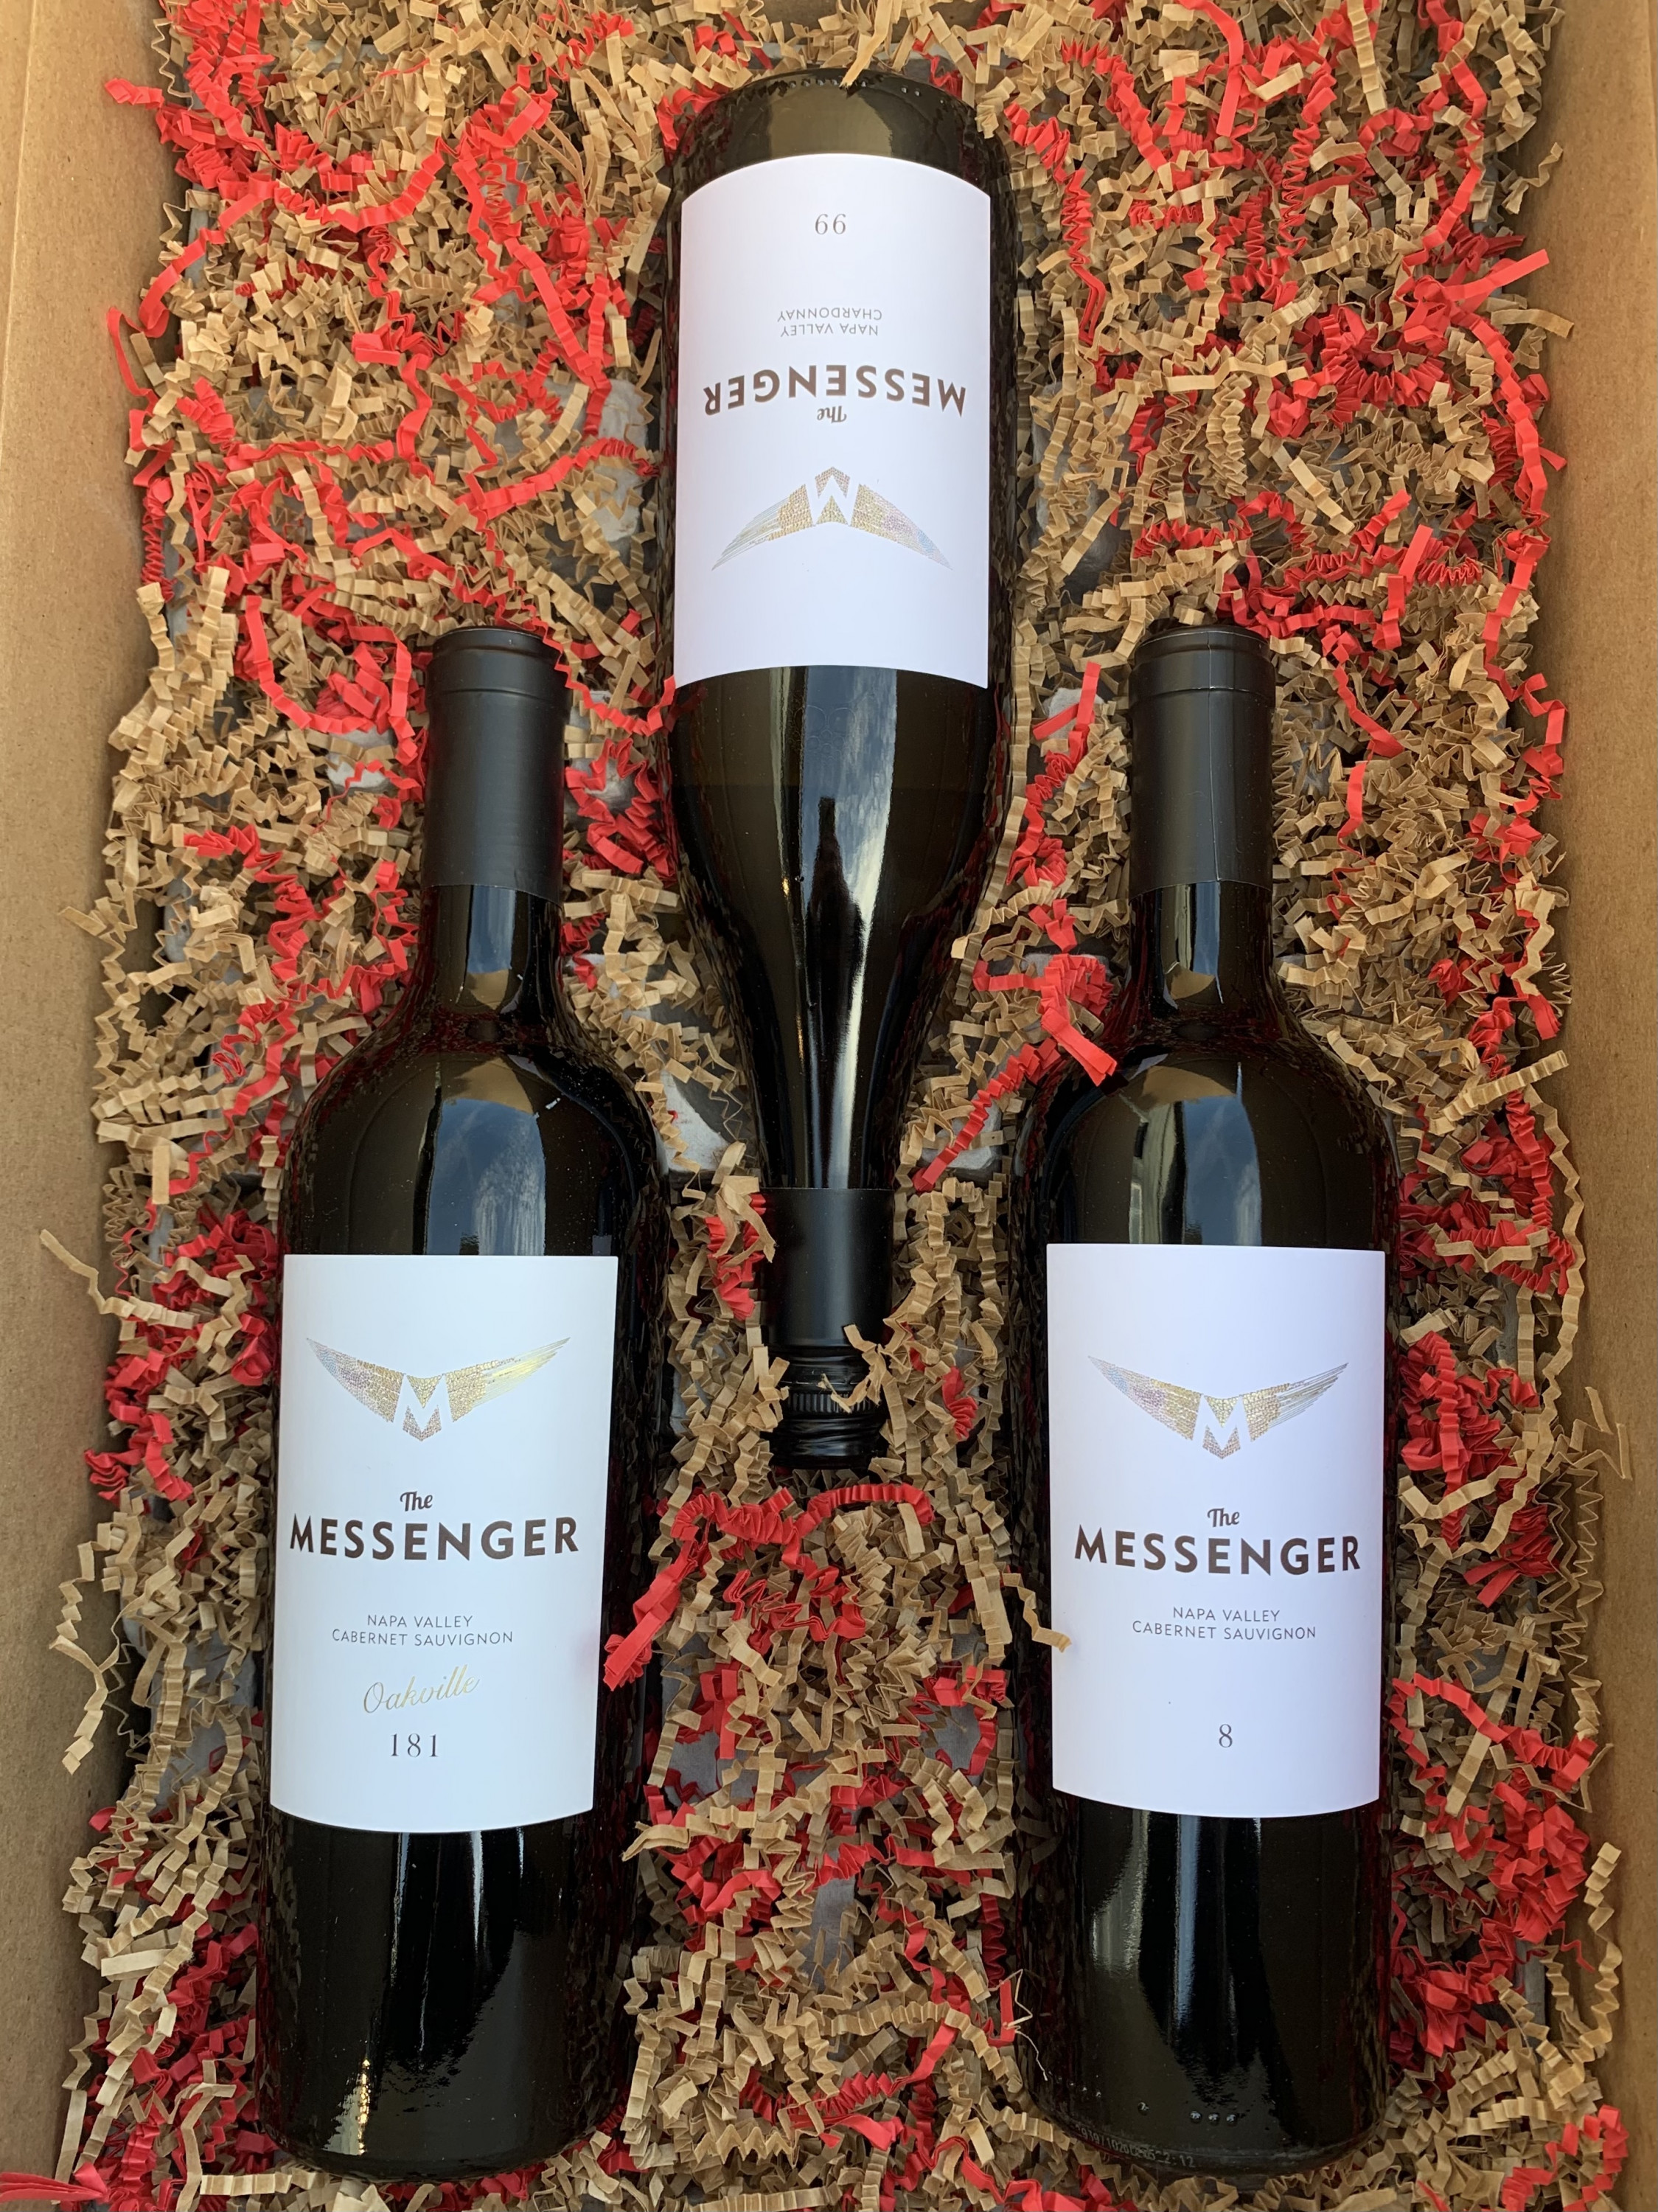 The Messenger 2018 Vintage 6pack 6x750ml The Messenger Napa Valley Wines - West Coast Only - Art+Farm Wine